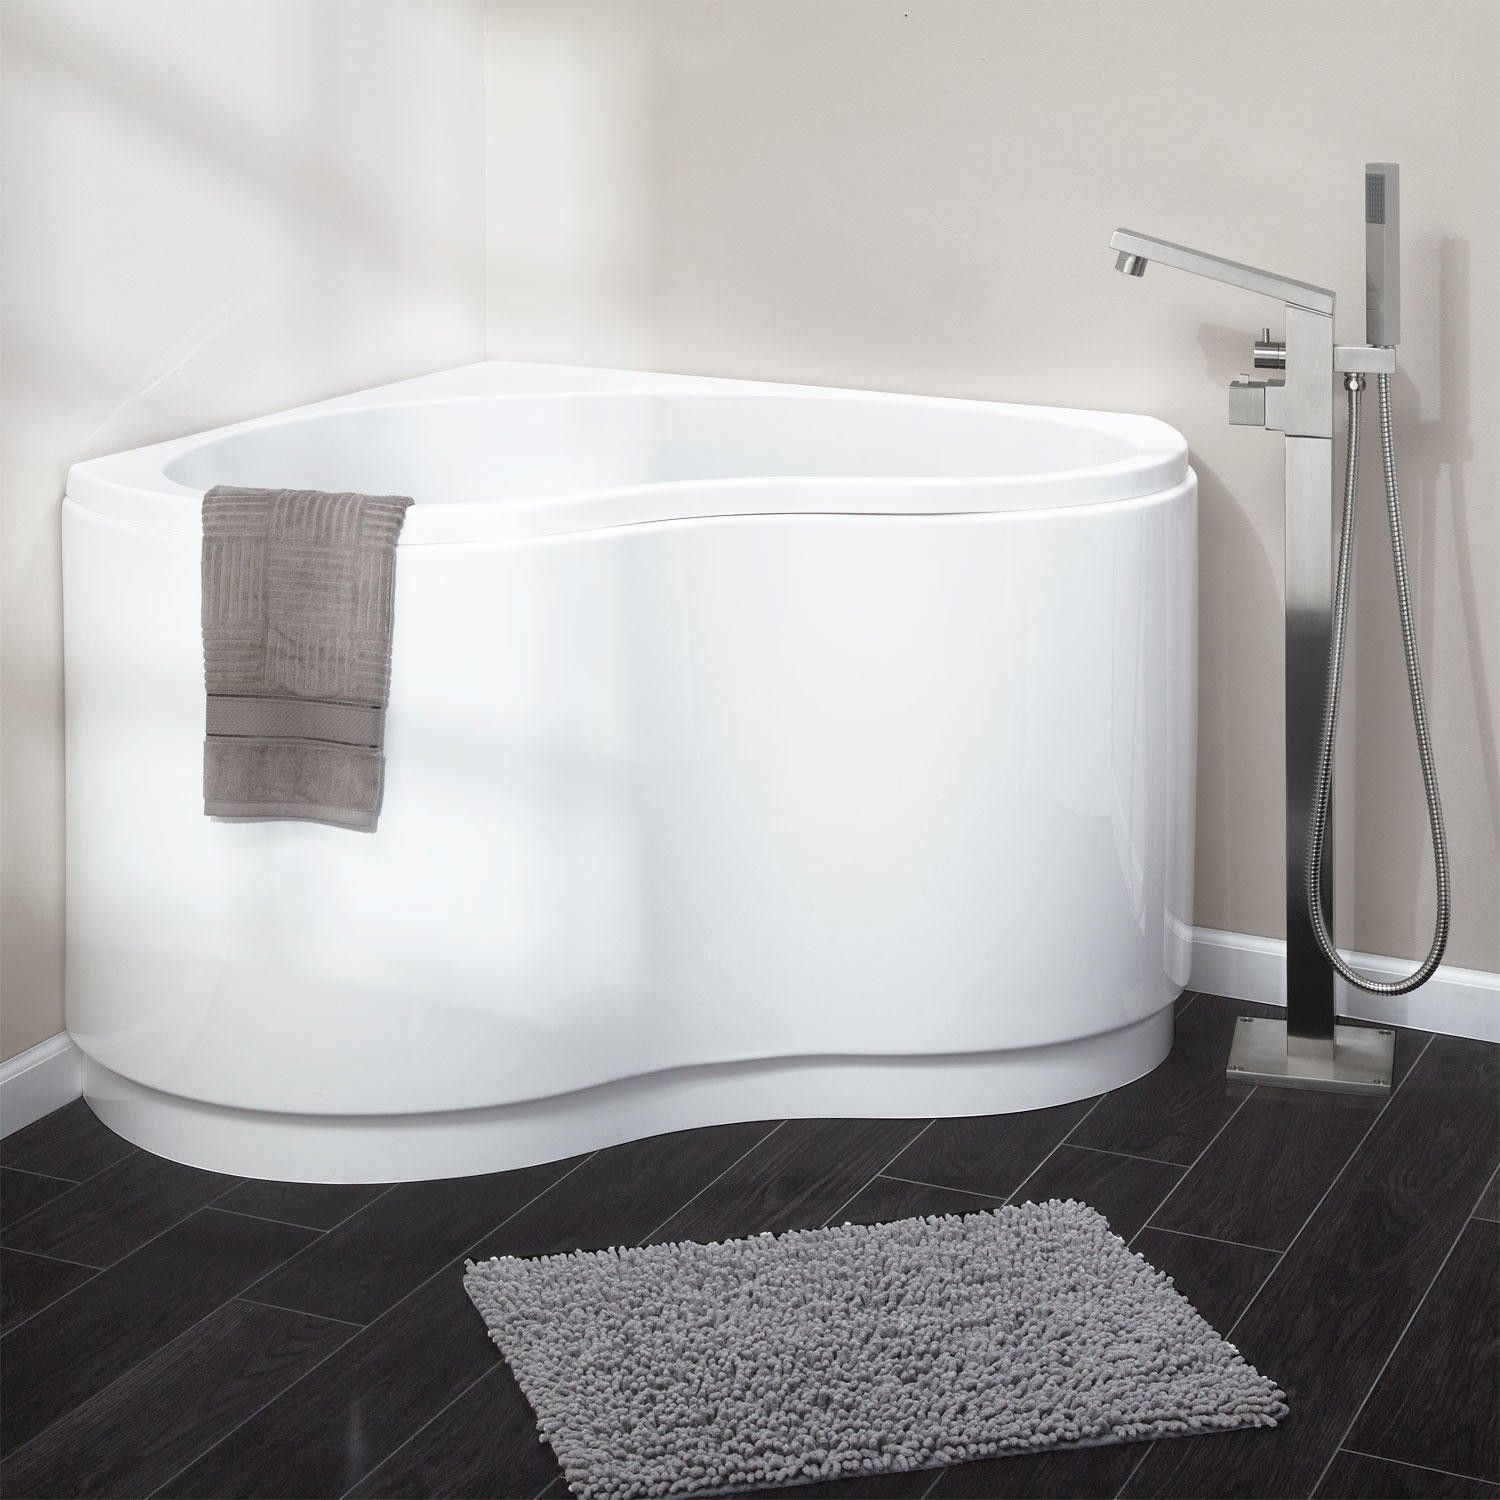 small corner soaking tub. 49  Kenora Acrylic Corner Tub Small BathtubSmall Soaking tub Tubs and Bath